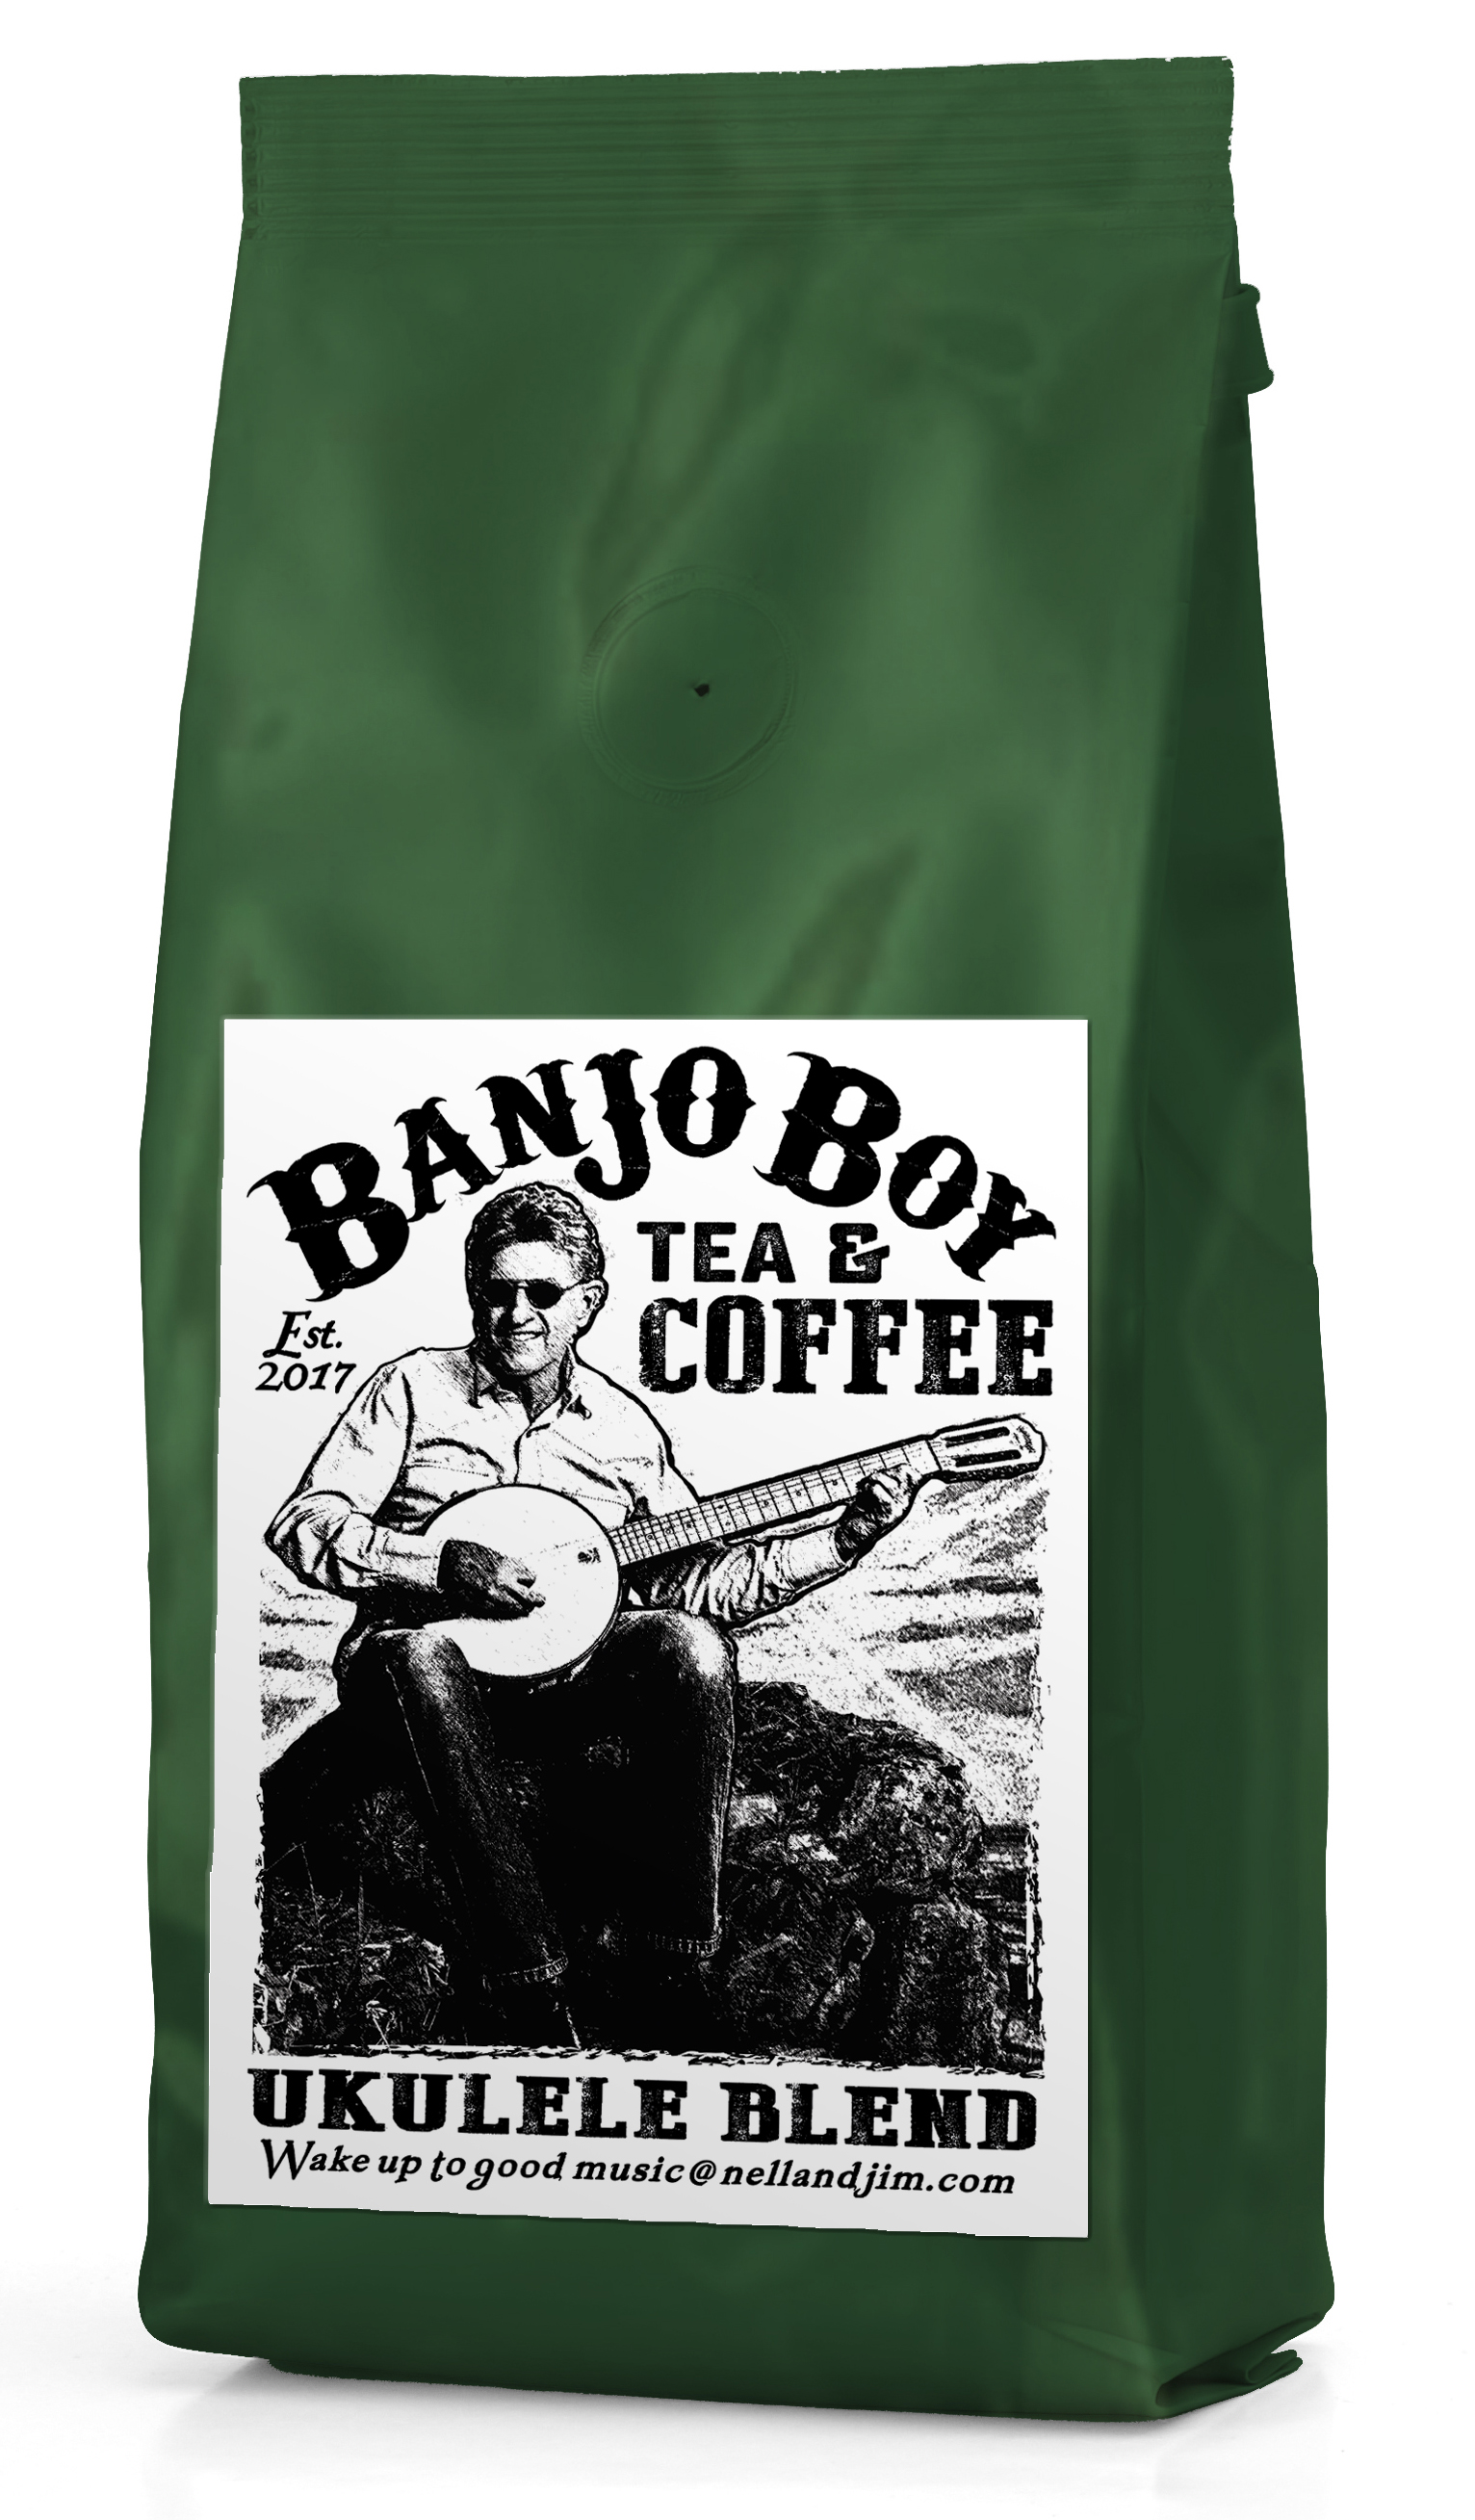 Ukulele Blend - This light roast blend has the classic Kona flavor profile, taste the air and smell the sea 'round the islands, bright overtones with hues of honey.